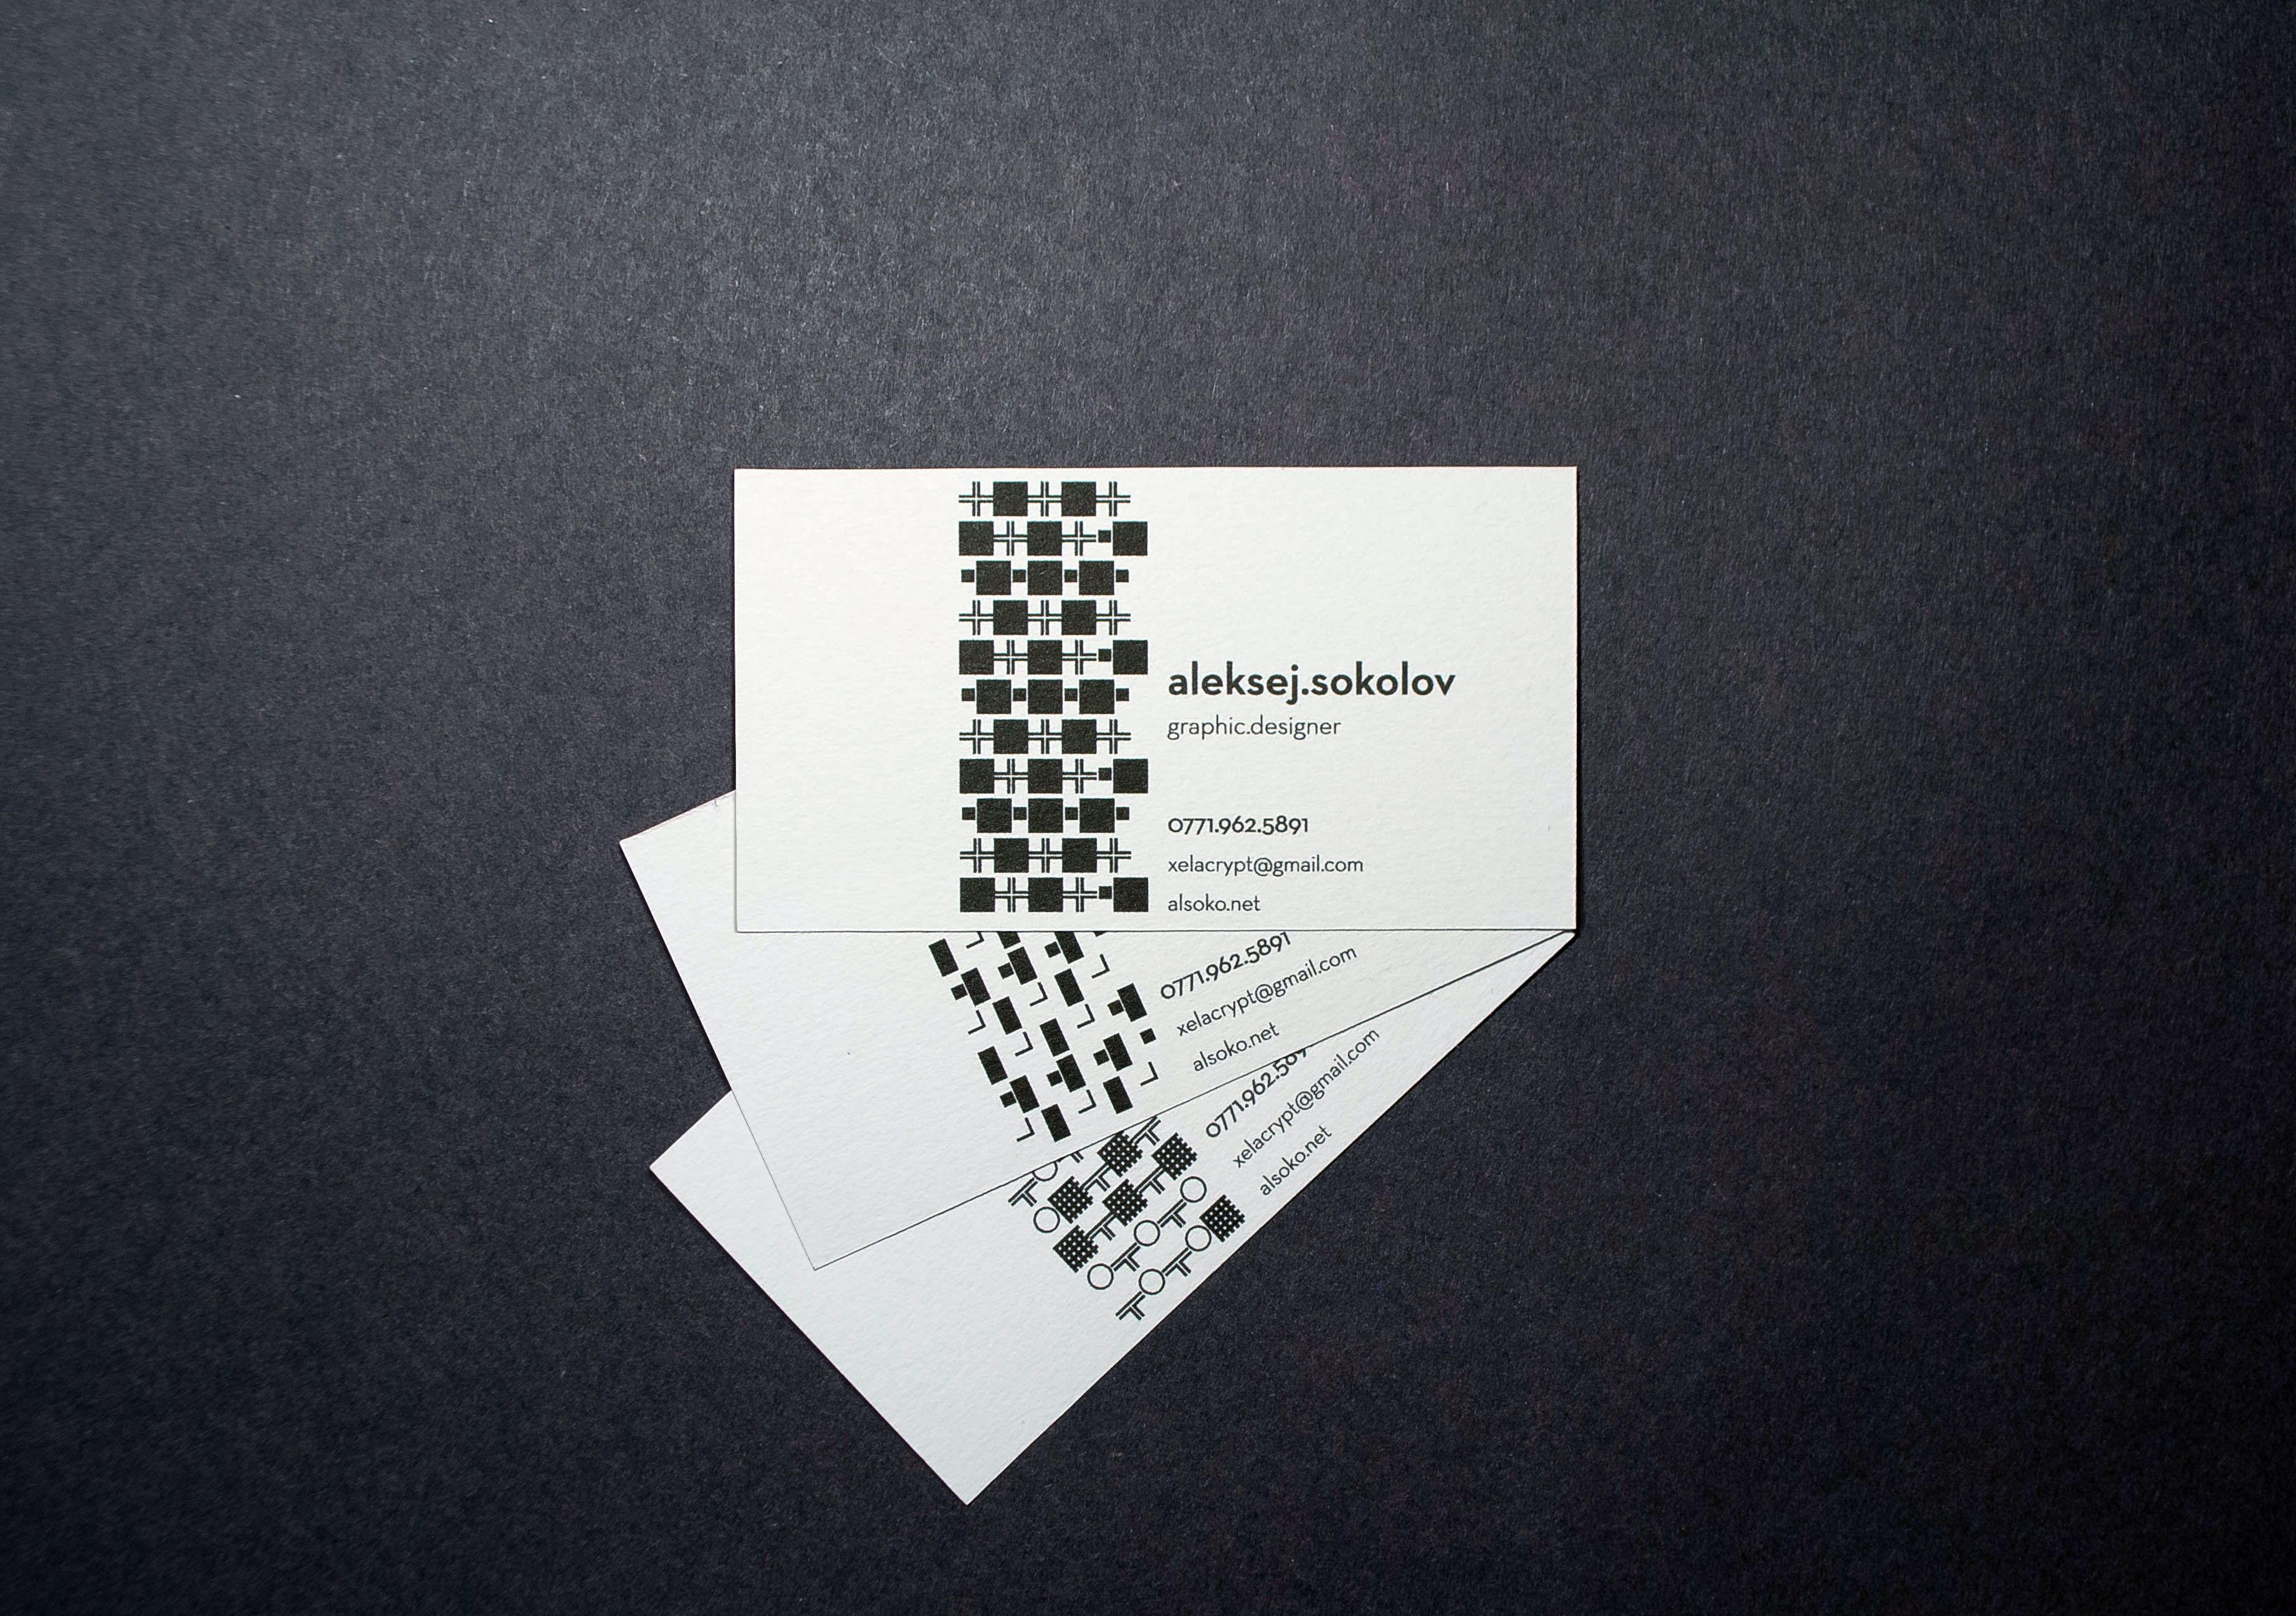 generative business cards made with Processing | meminemine | Pinterest